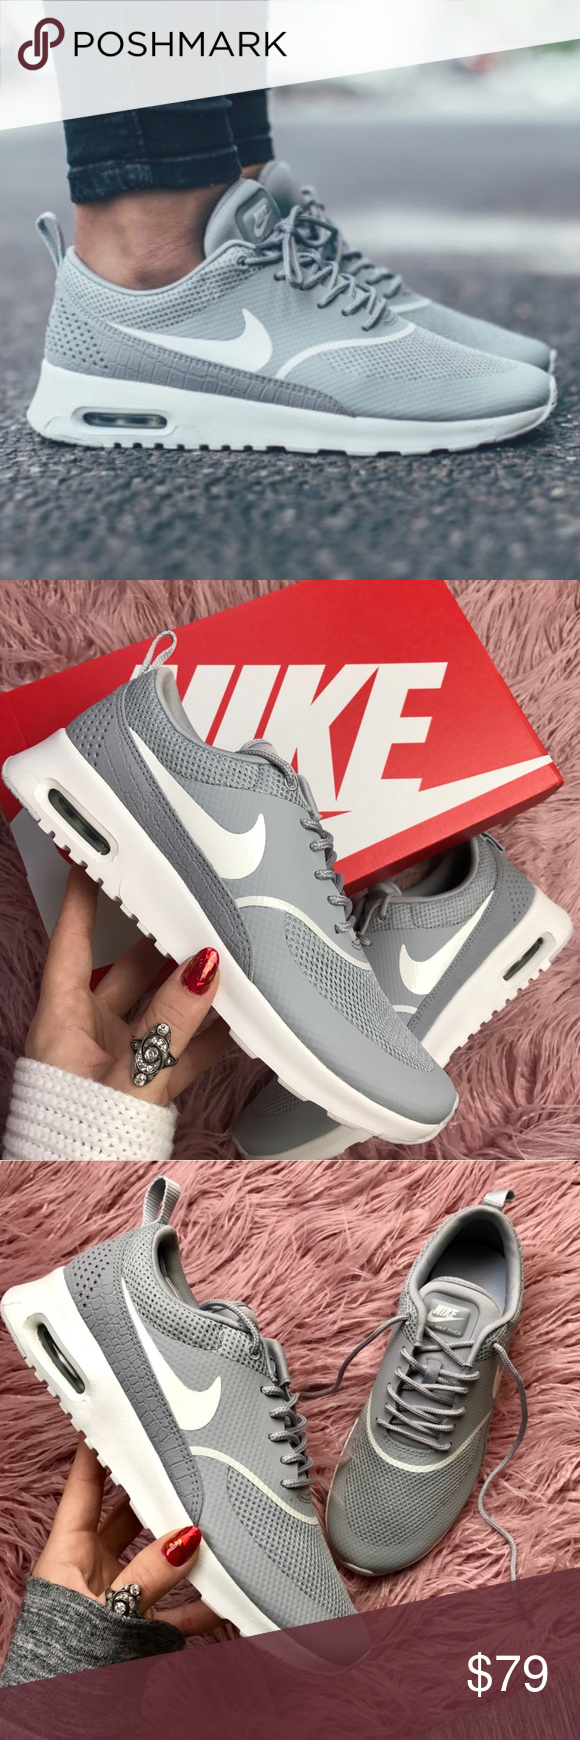 050de49da5 NWT Nike Thea Brand new with box!!price is firm no trades!! Meet the ...